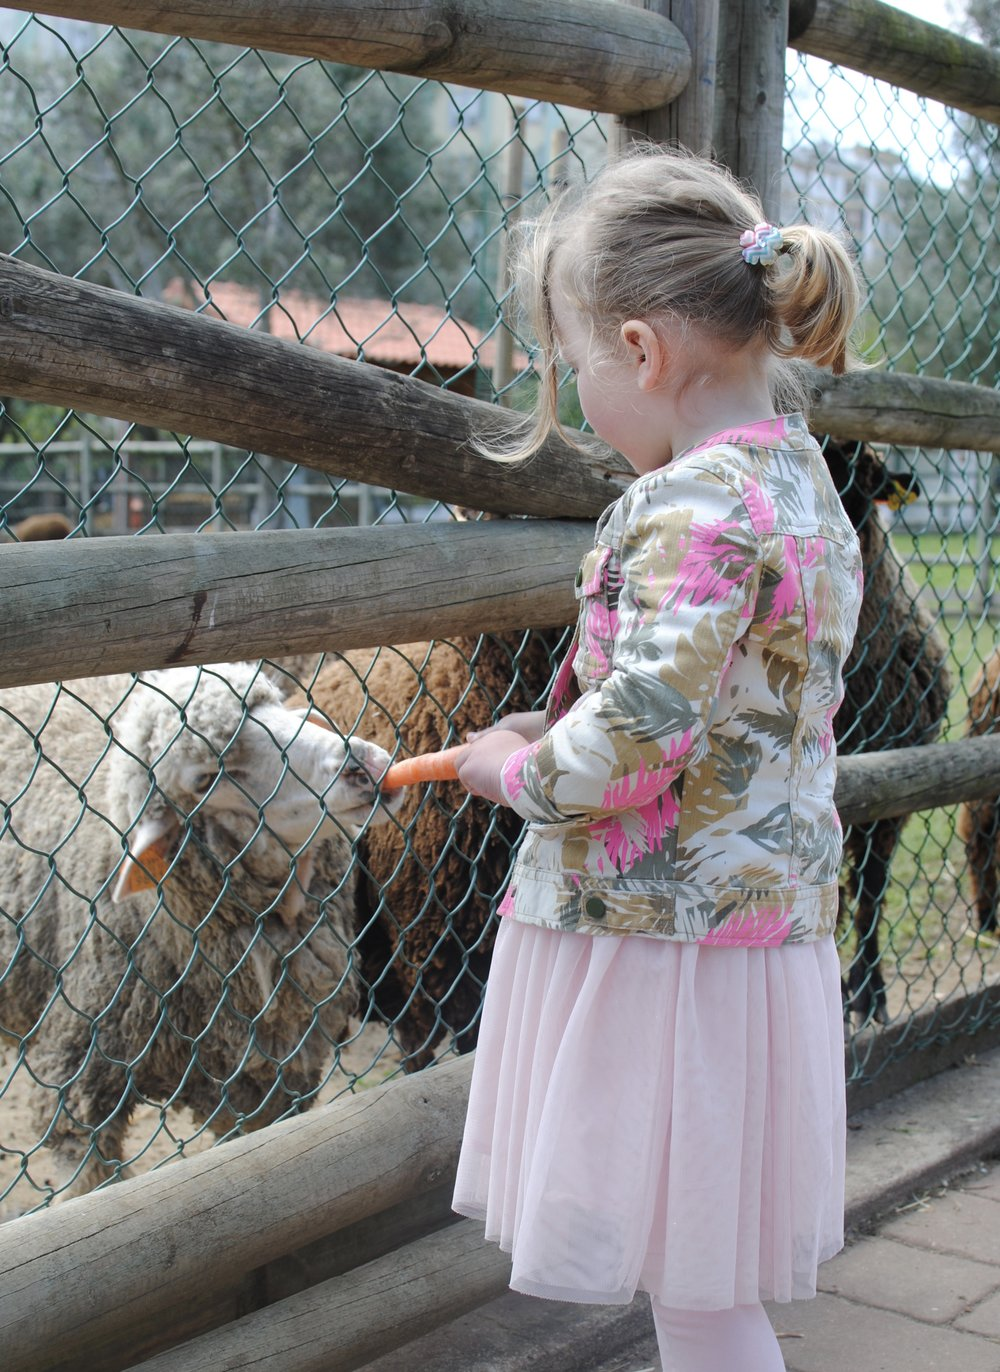 We always visit the Quinta armed with fresh carrots and apples but we saw a sign last time requesting visitors to not feed the animals!